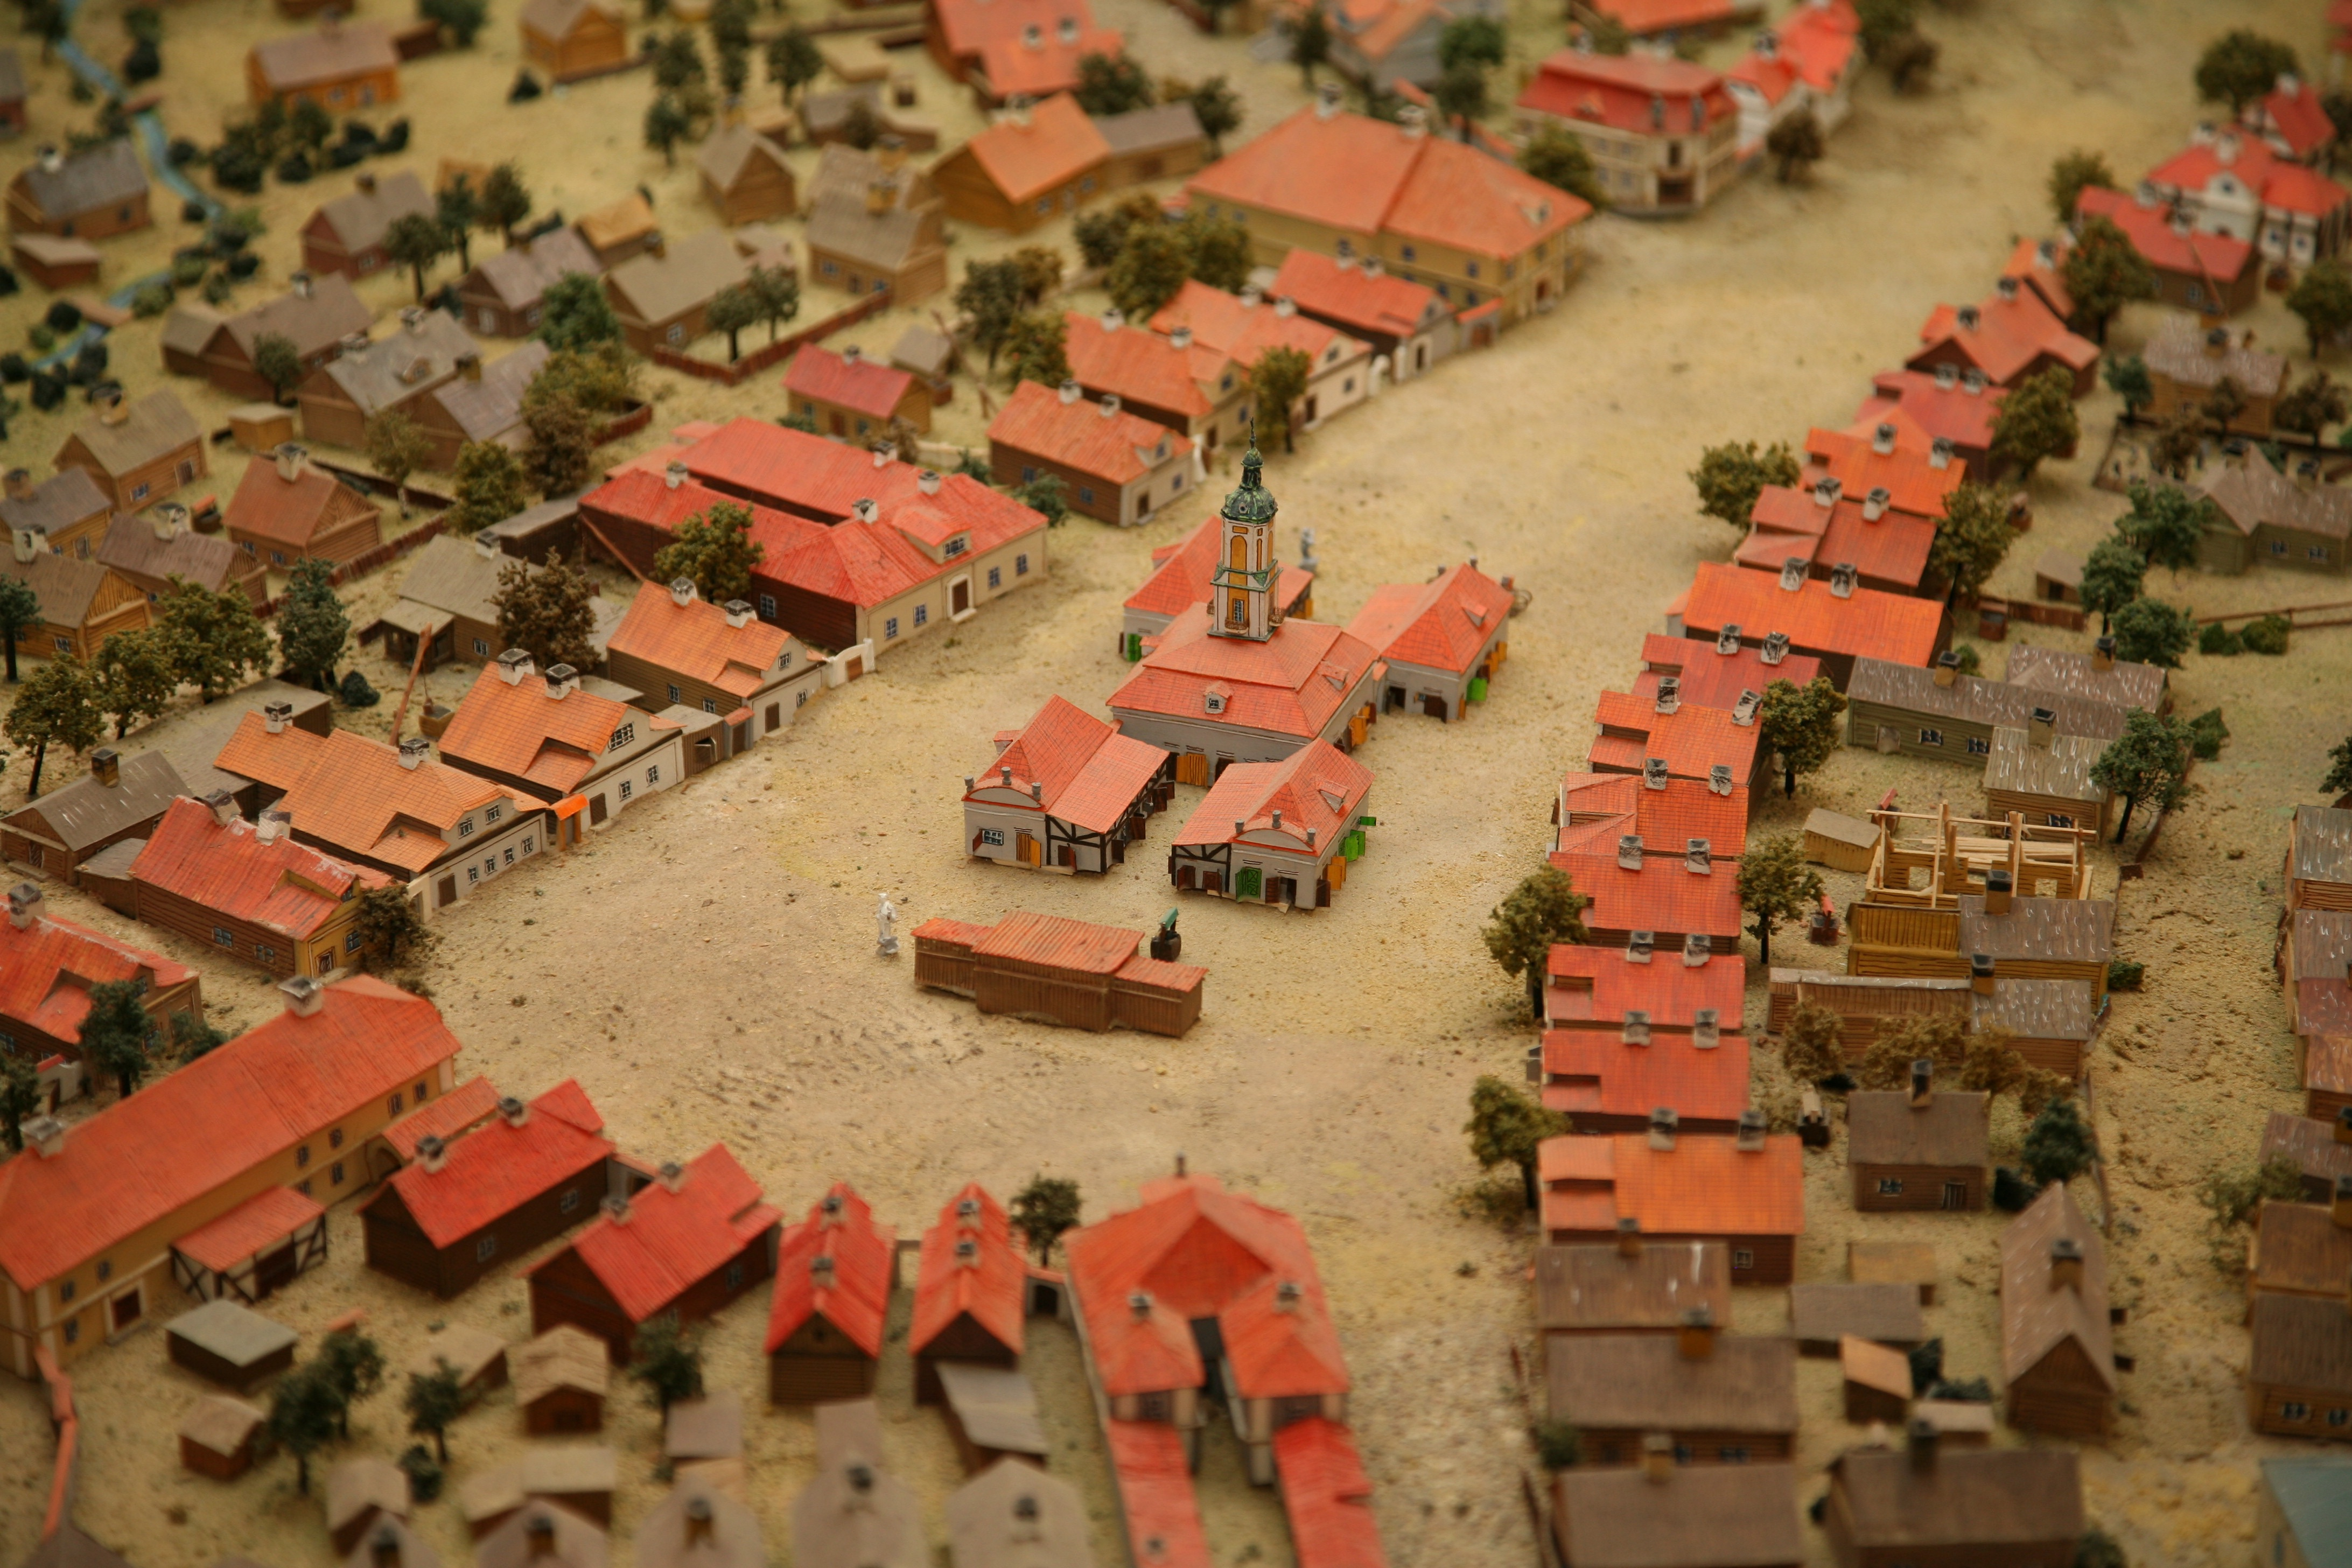 Fig. 2: Model of the city of Białystok, detail. Photograph by Anna Sierko (Museum of History in Białystok)